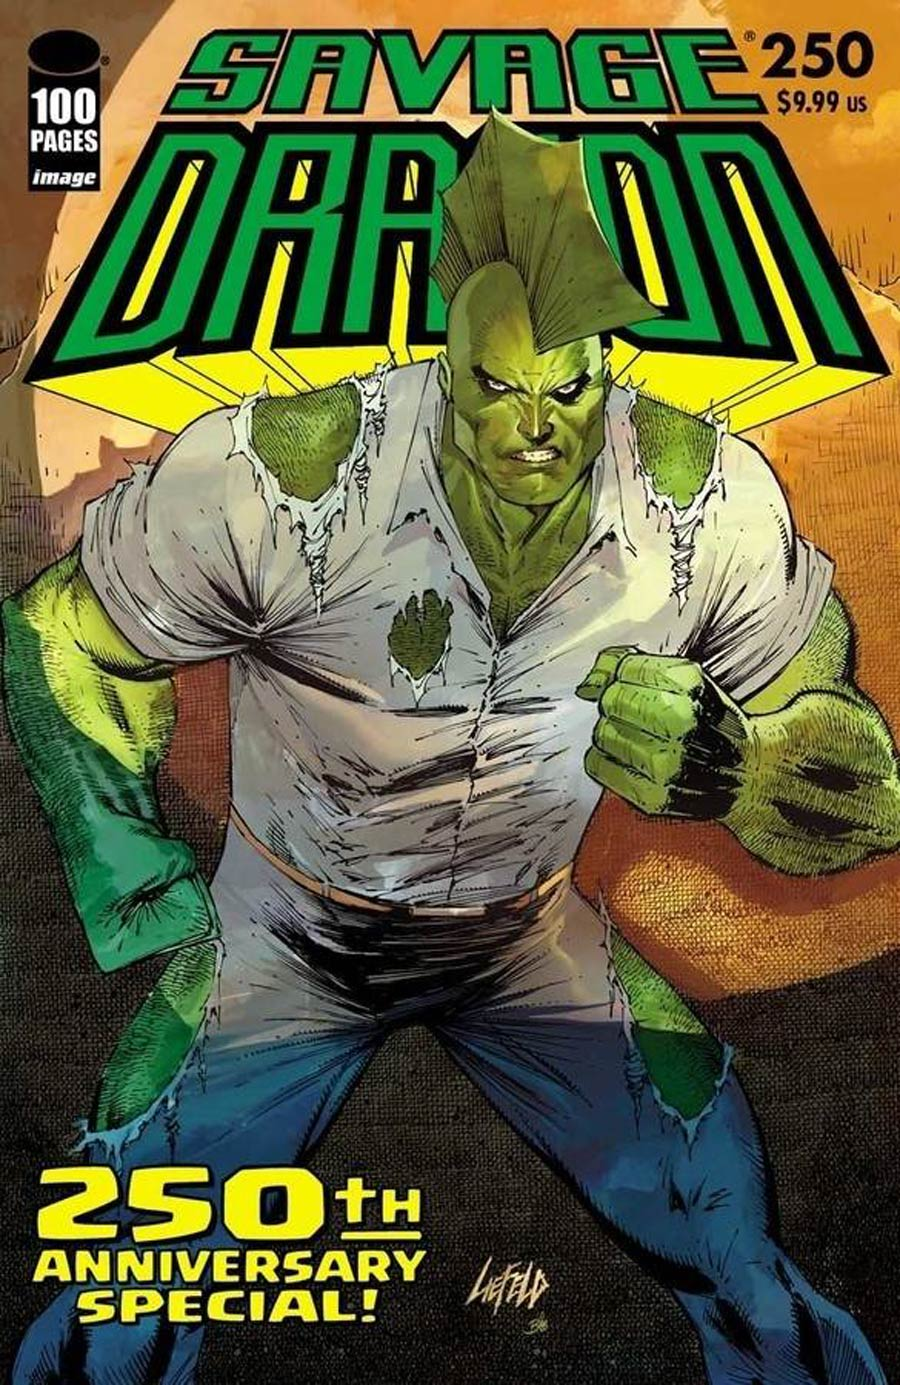 Savage Dragon Vol 2 #250 Cover C Variant Rob Liefeld Cover